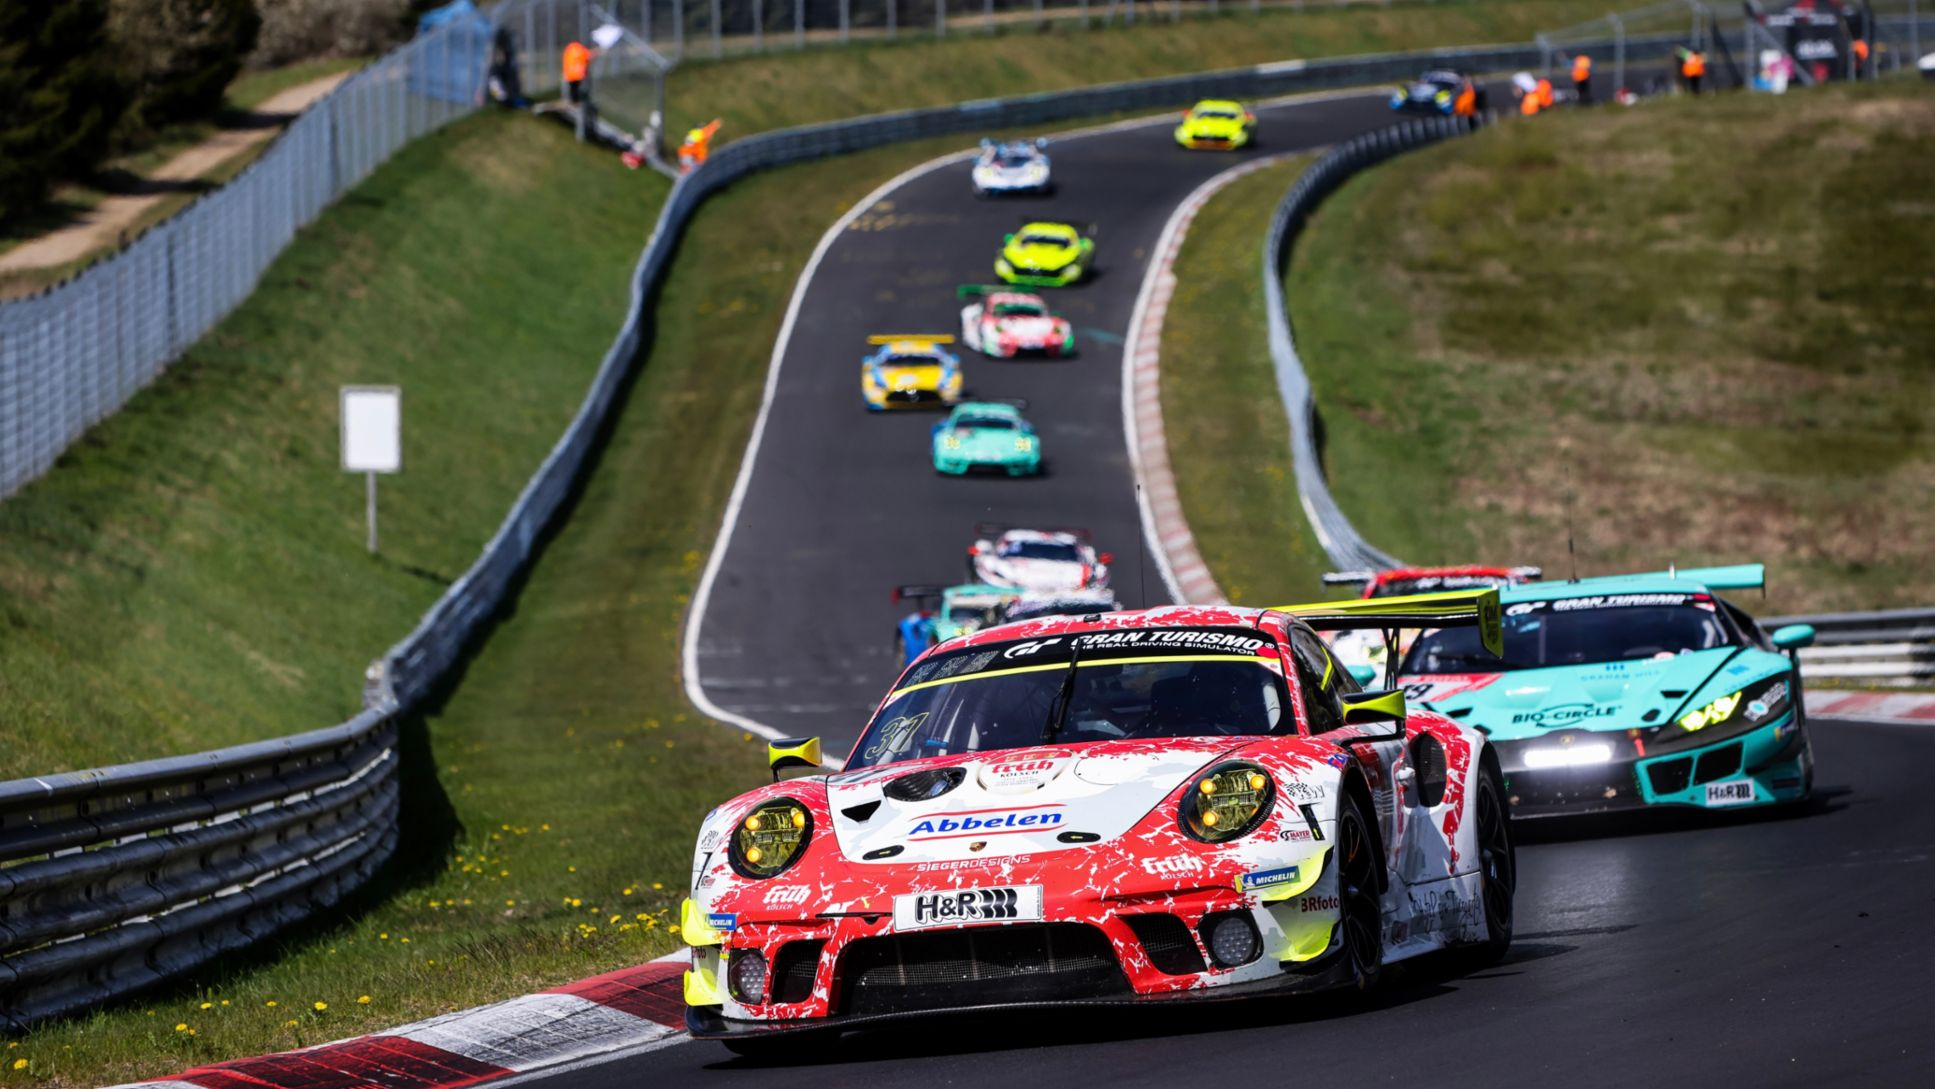 Porsche customer teams fight for 13th outright victory in the Eifel - Image 3